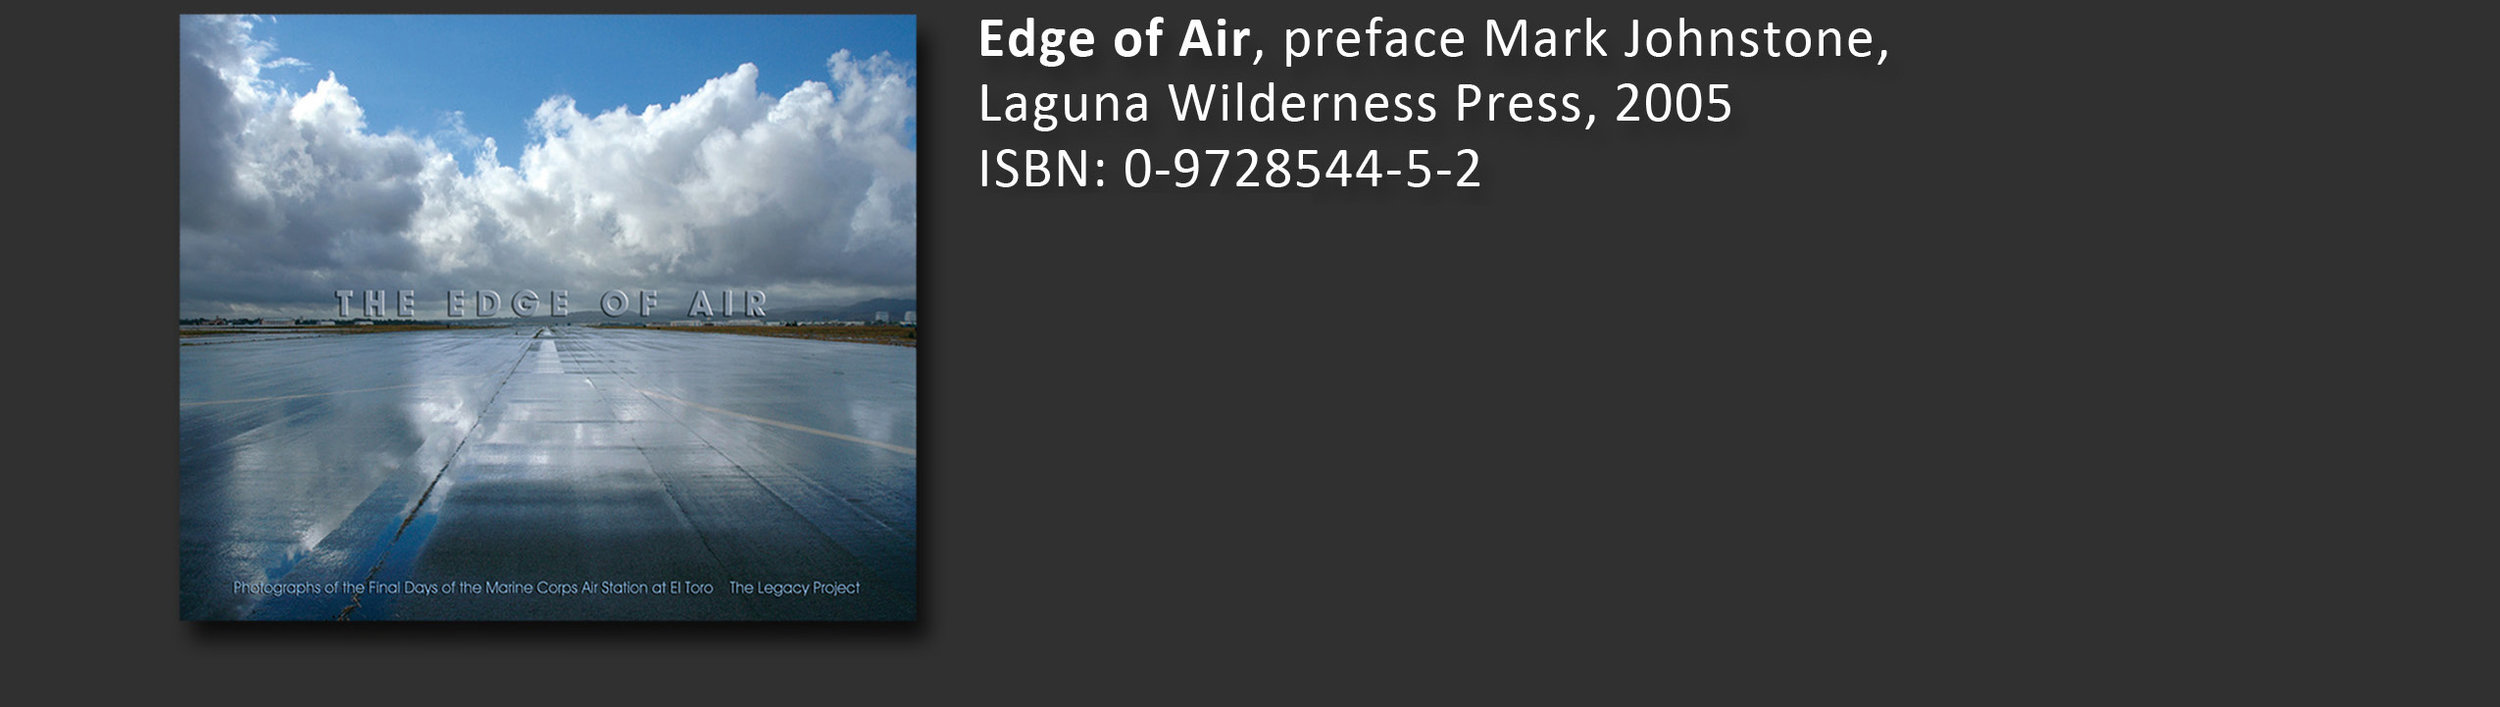 Edge of Air New panel March 2019.jpg